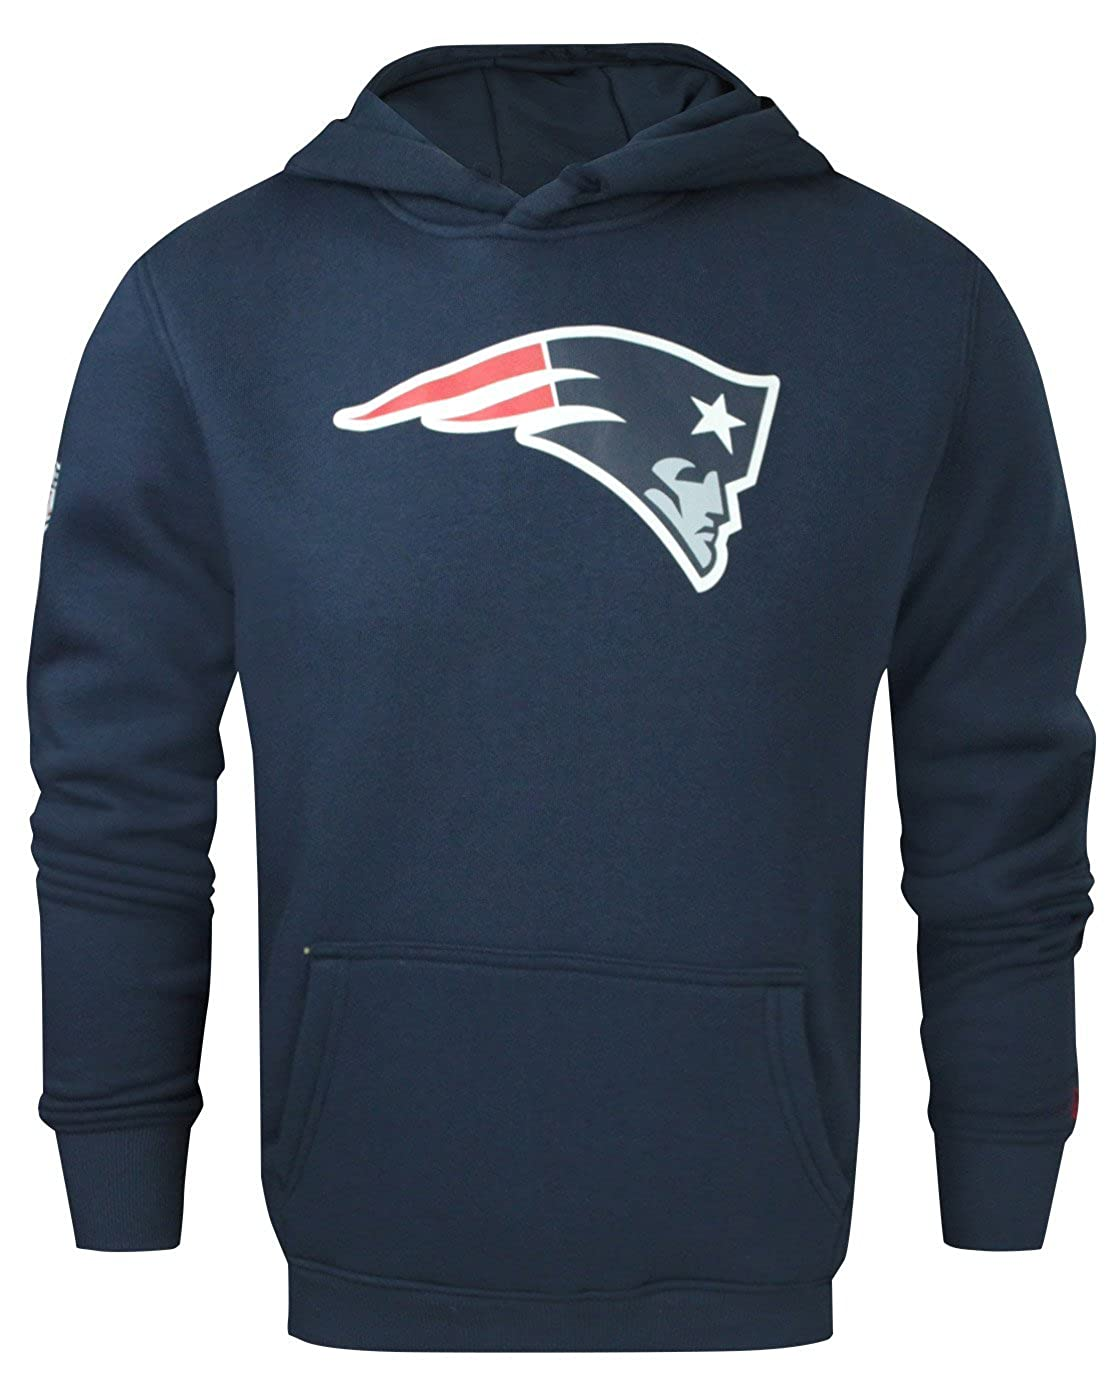 New Era NFL New England Patriots Men s Hoodie (XS)  Amazon.co.uk  Clothing 0322b36a3